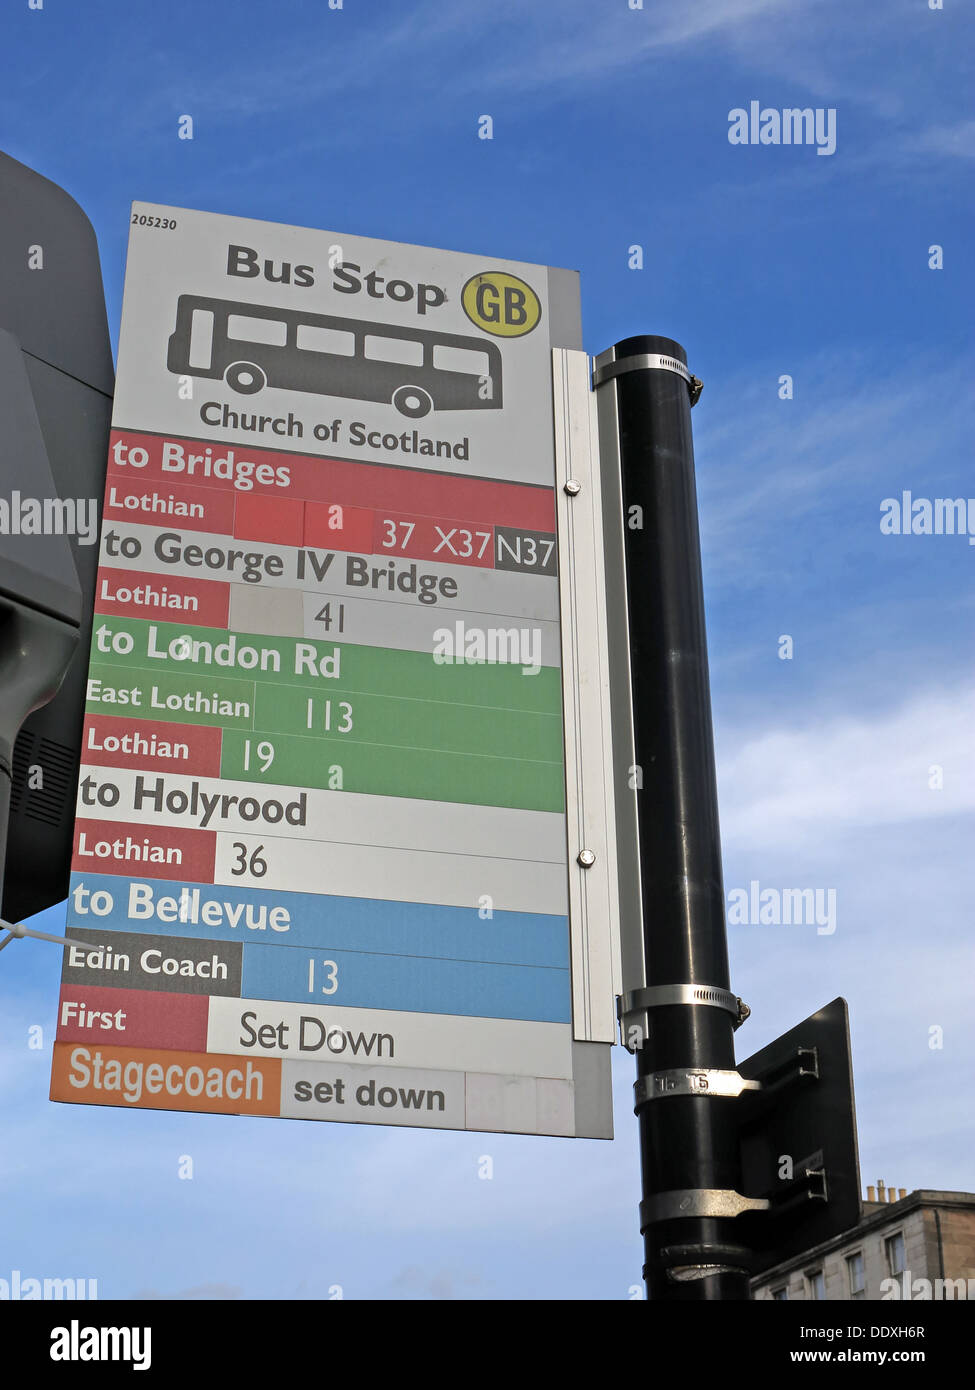 Scotland,buses,transport,urban,service,services,Holyrood,coach,travel,Edinburgh city,bus stop,Busstop,East Lotian,Church of Scotland,GoTonySmith,@HotpixUK,Buy Pictures of,Buy Images Of,Images of,Stock Images